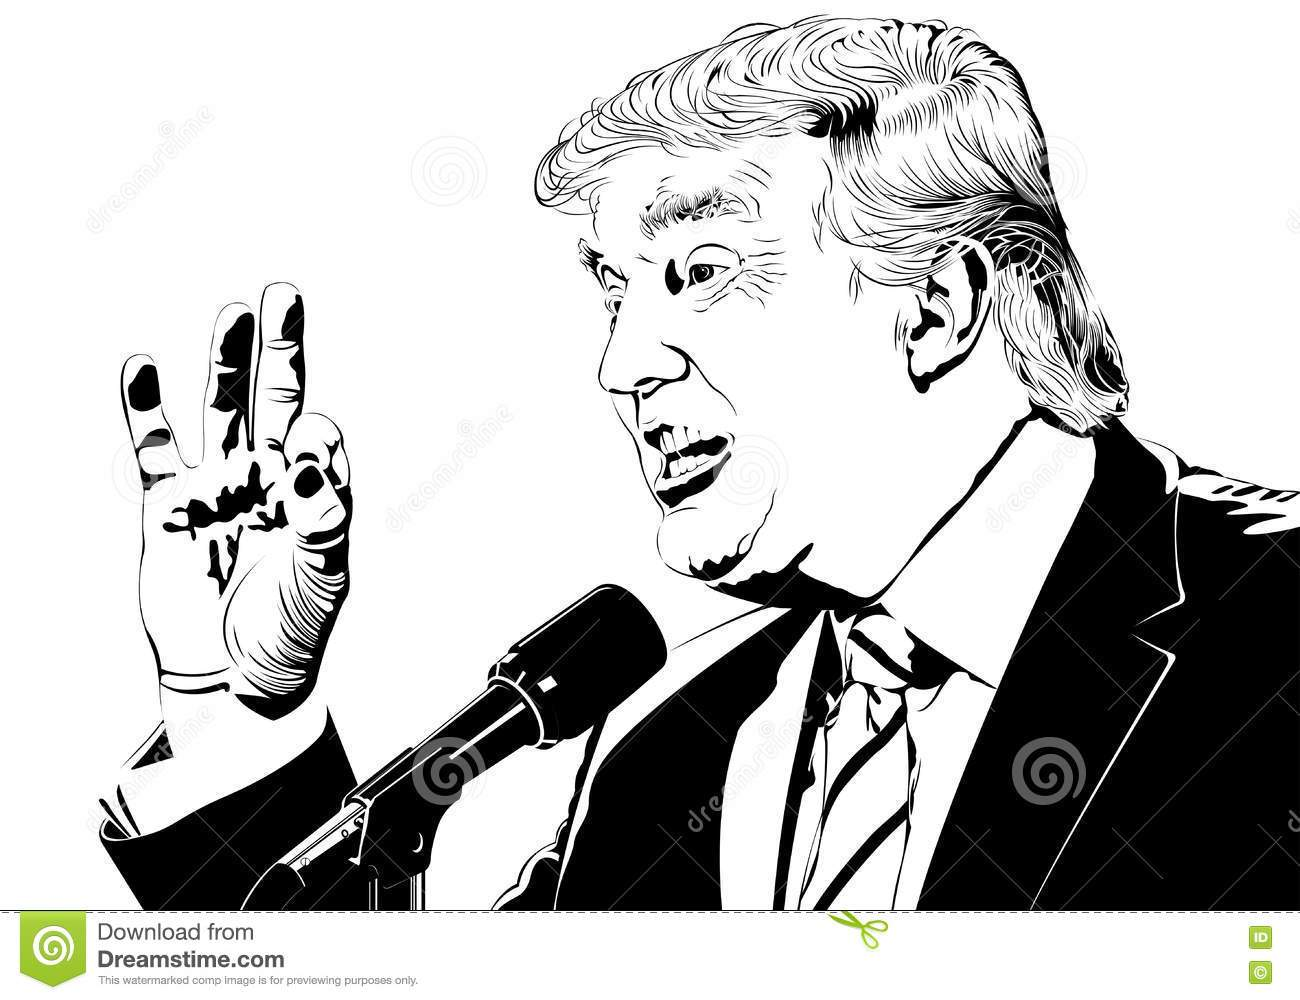 Trump clipart black and white 2 » Clipart Portal.